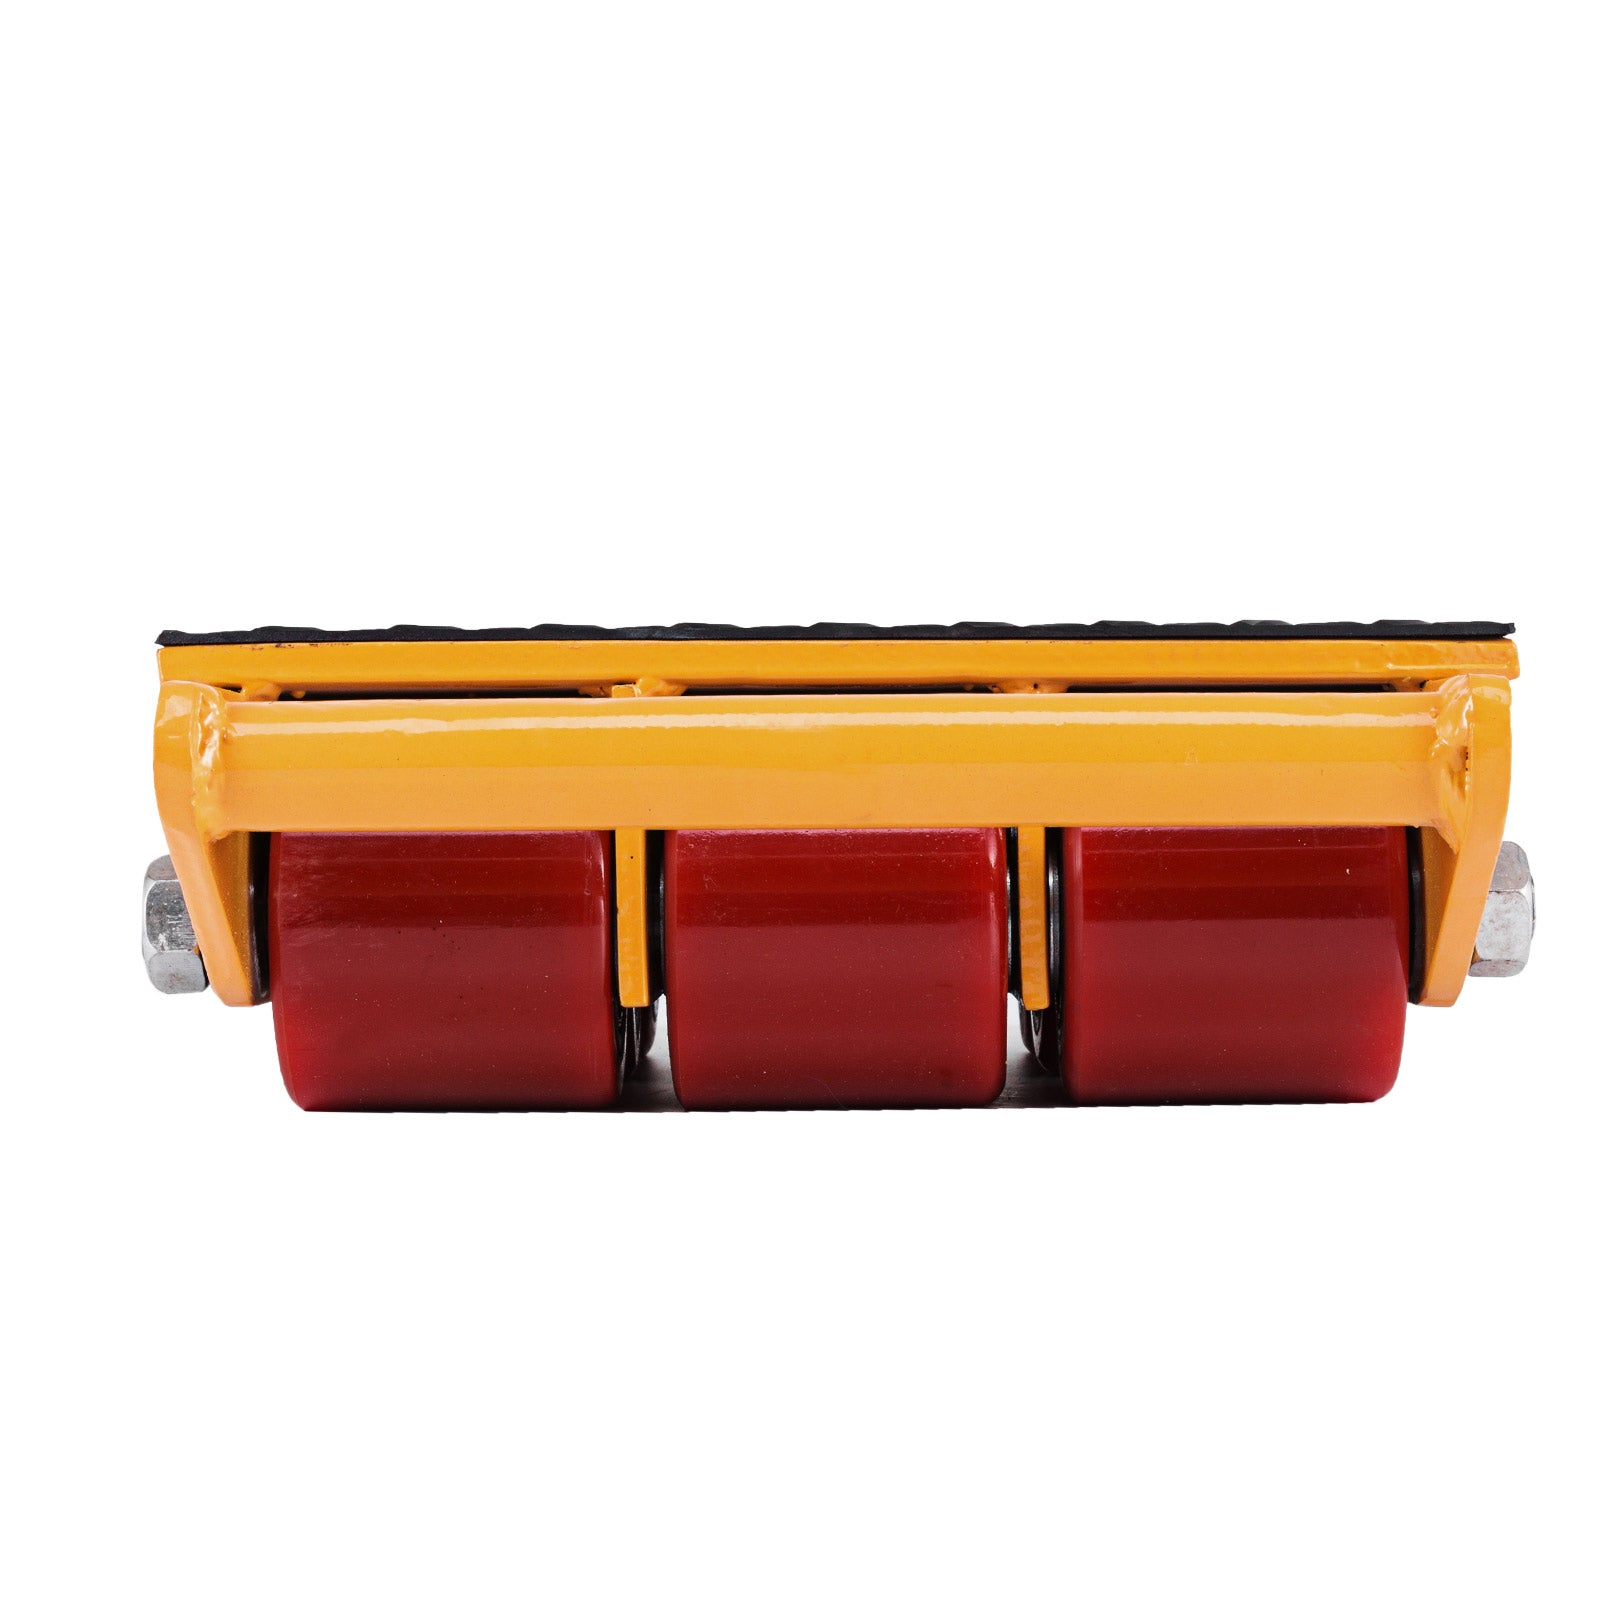 15t Heavy Duty Machinery Skate Rolling Mover W/non-slip Mat 33000lbs